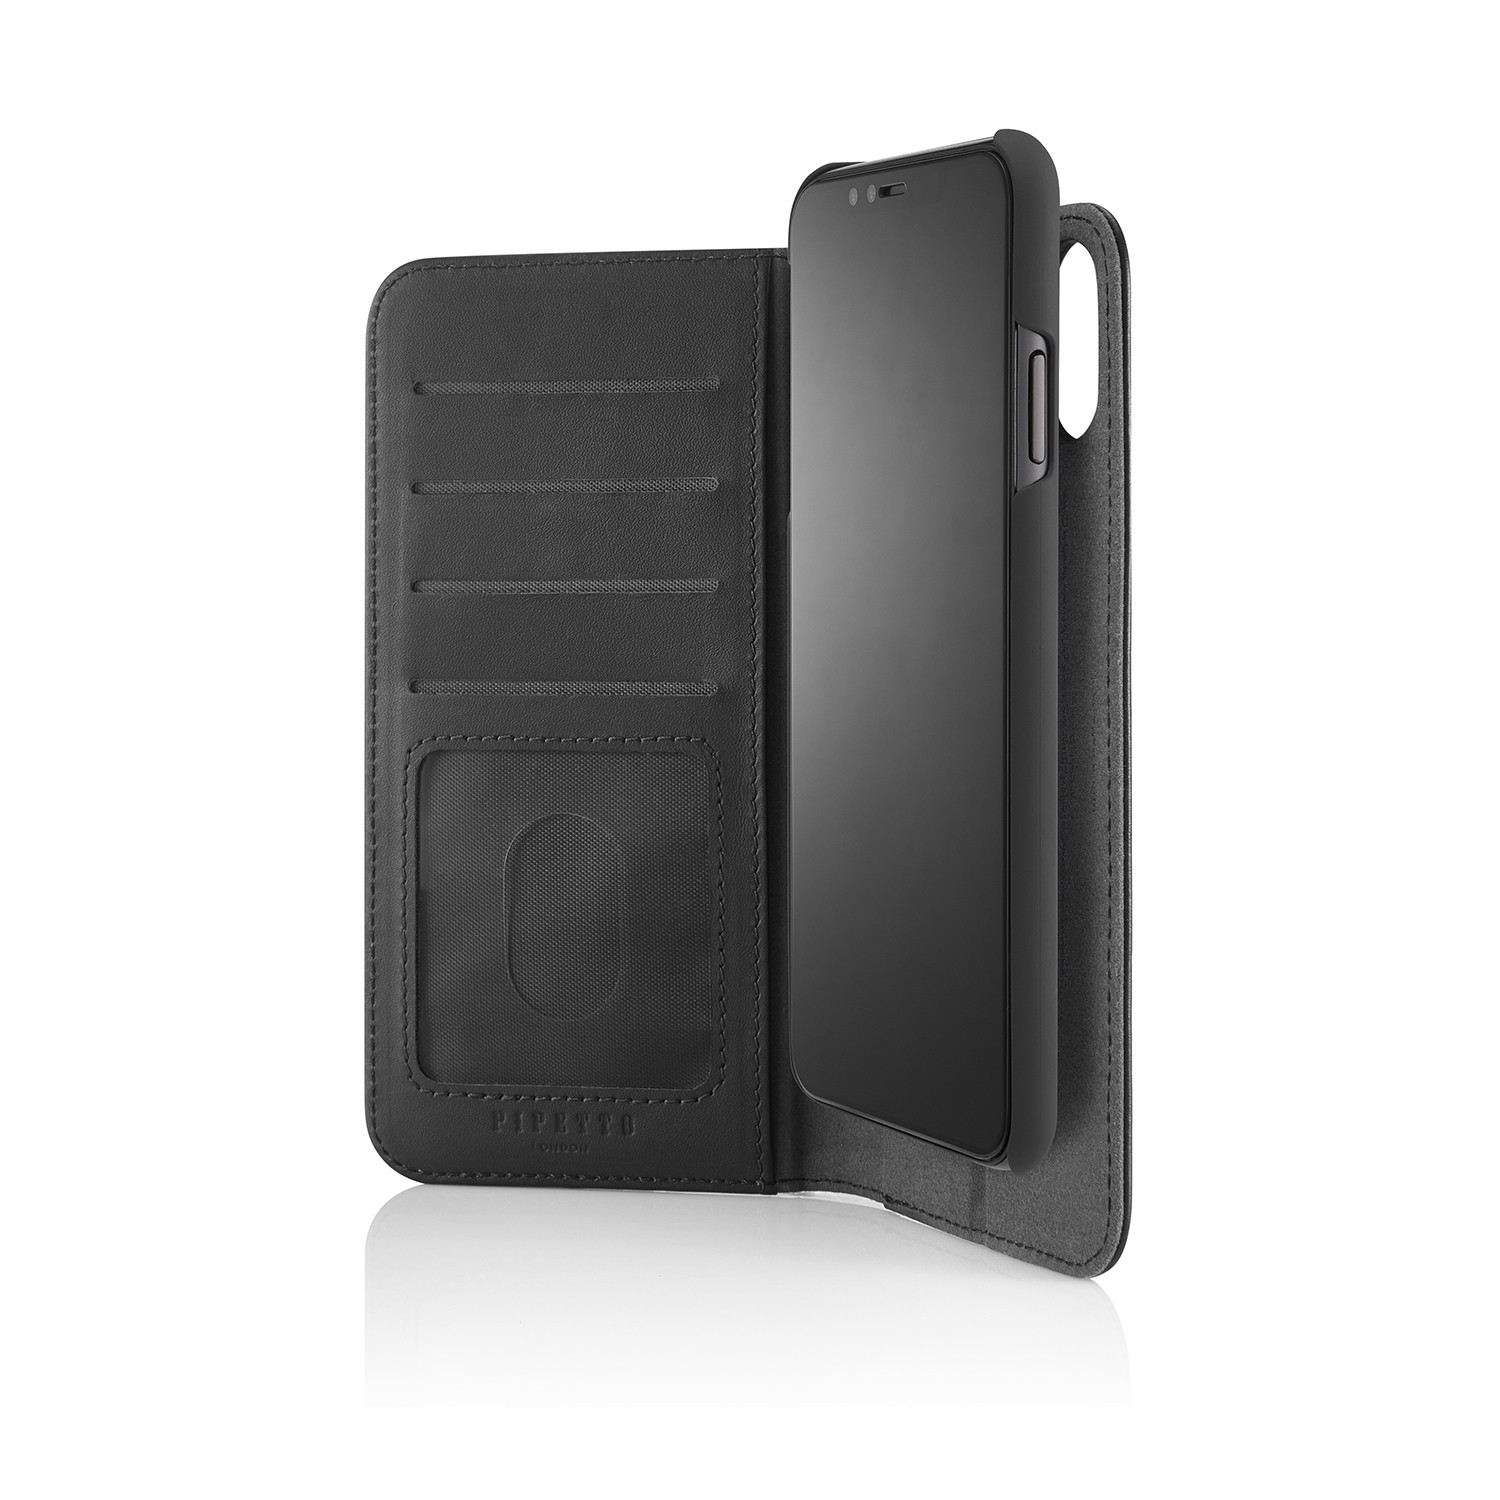 the latest 8f721 35714 iPhone XS Max 2-in-1 Leather Magnetic Folio Case - Black